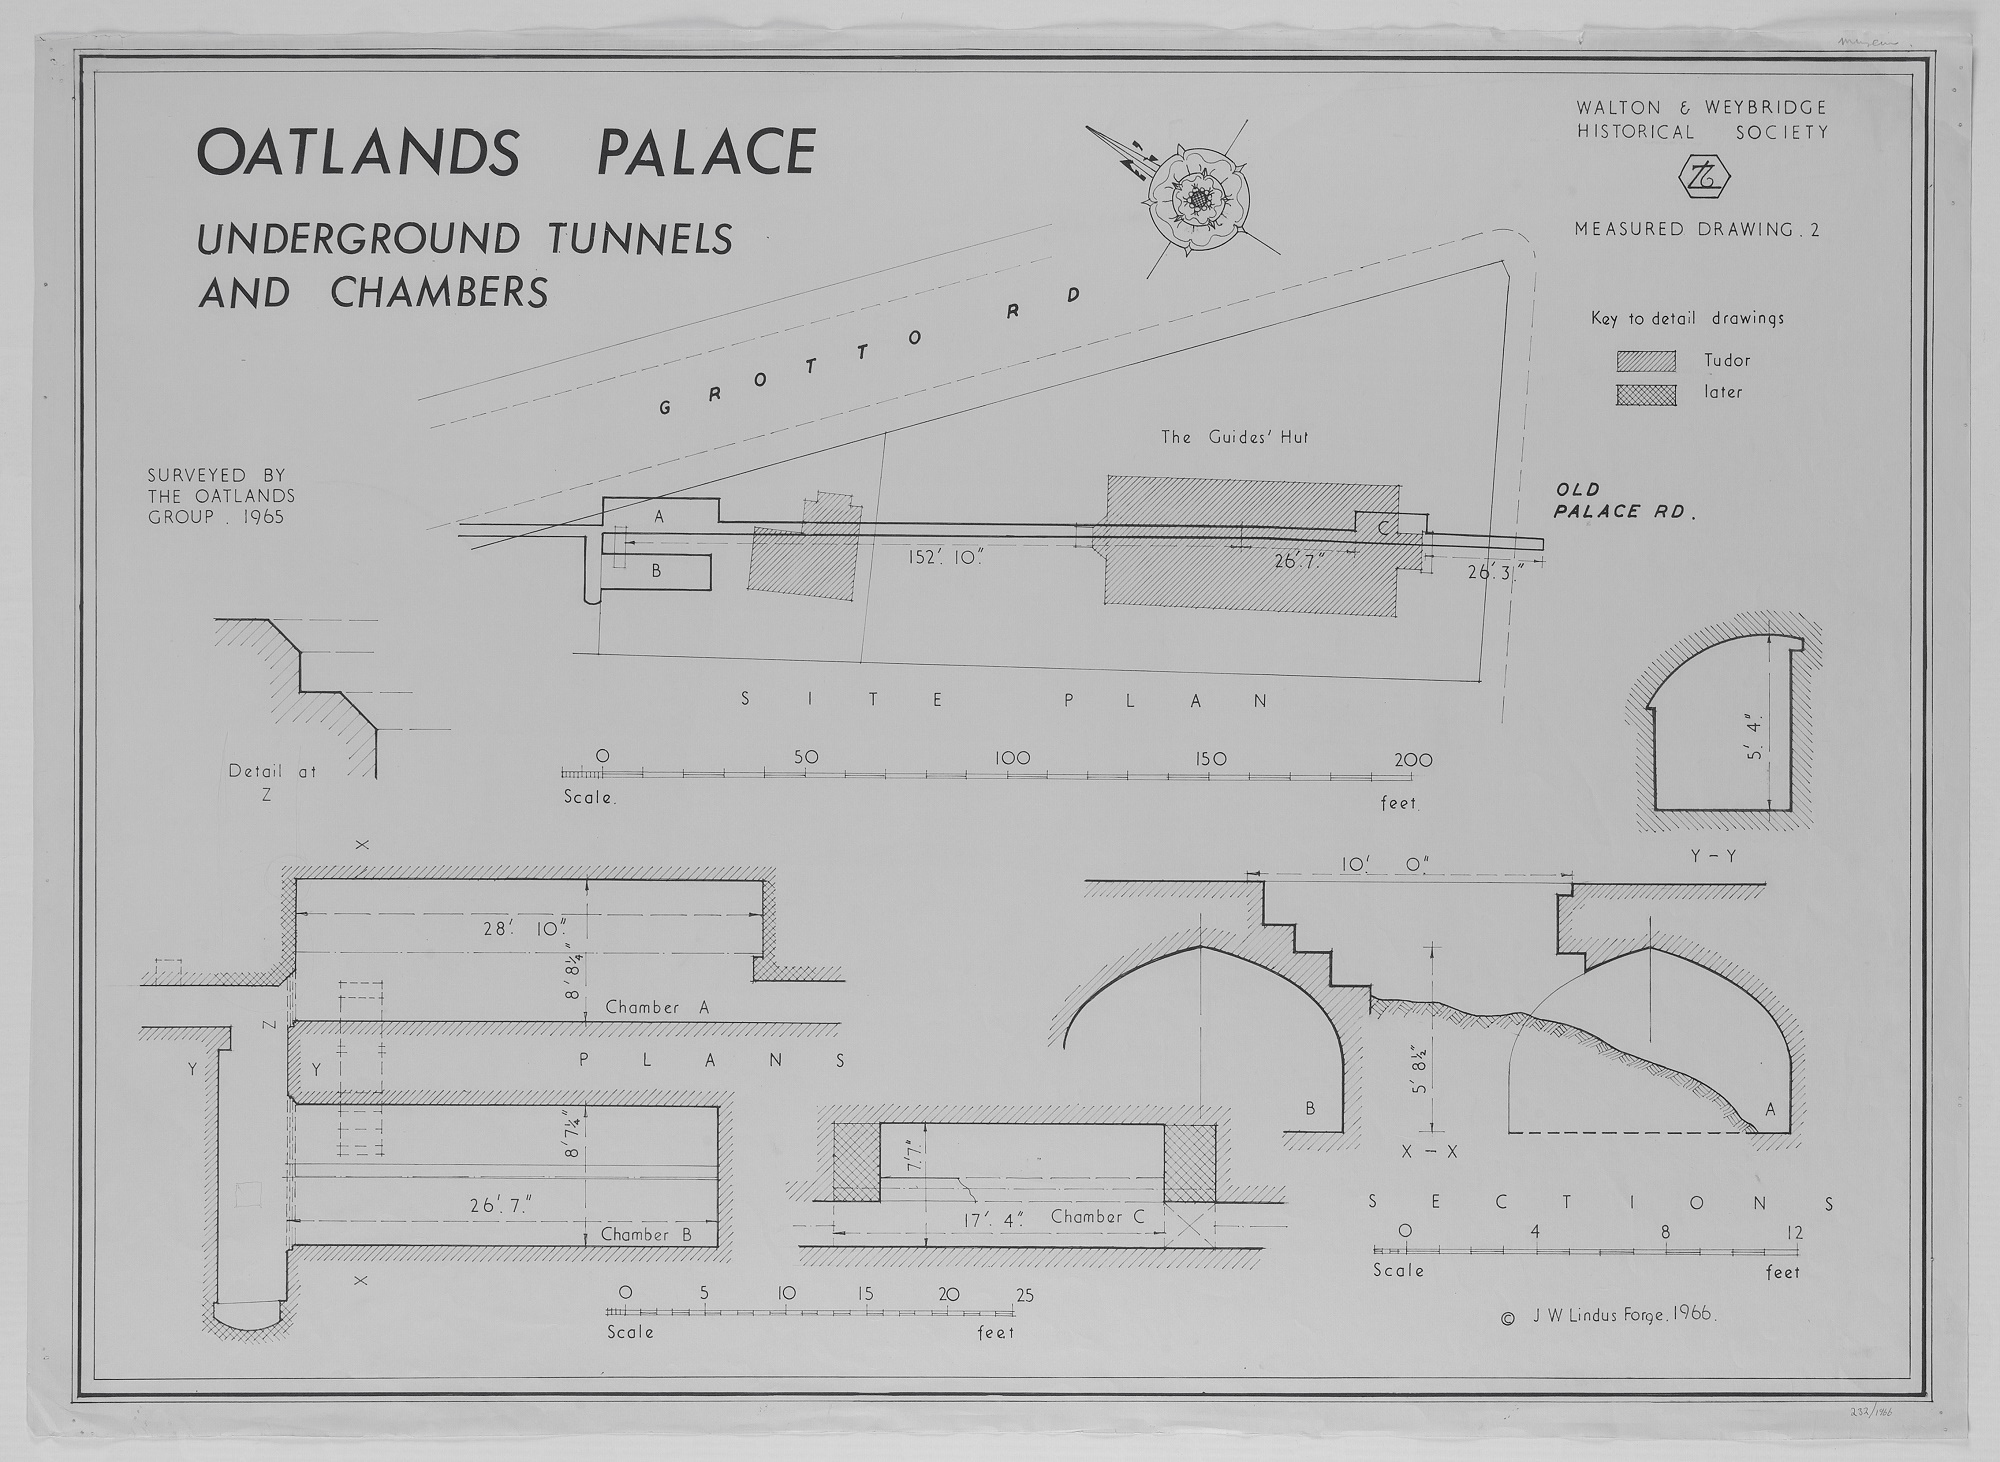 Plan and elevations of Underground drains and chambers on the site of Oatlands Palace.